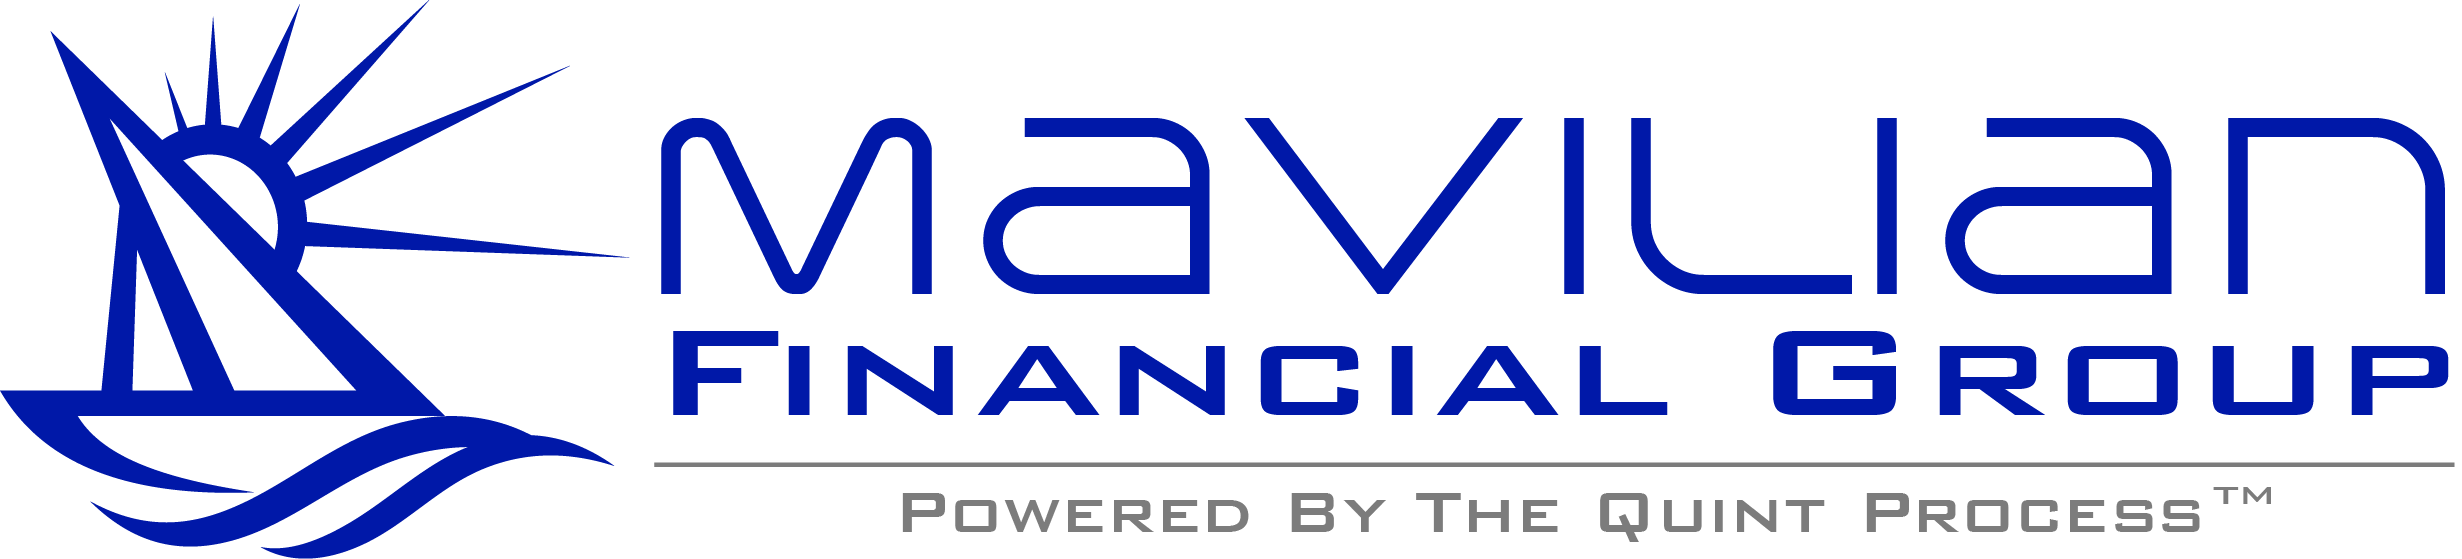 Mavilian Financial Group: High-End Tax & Wealth Advice